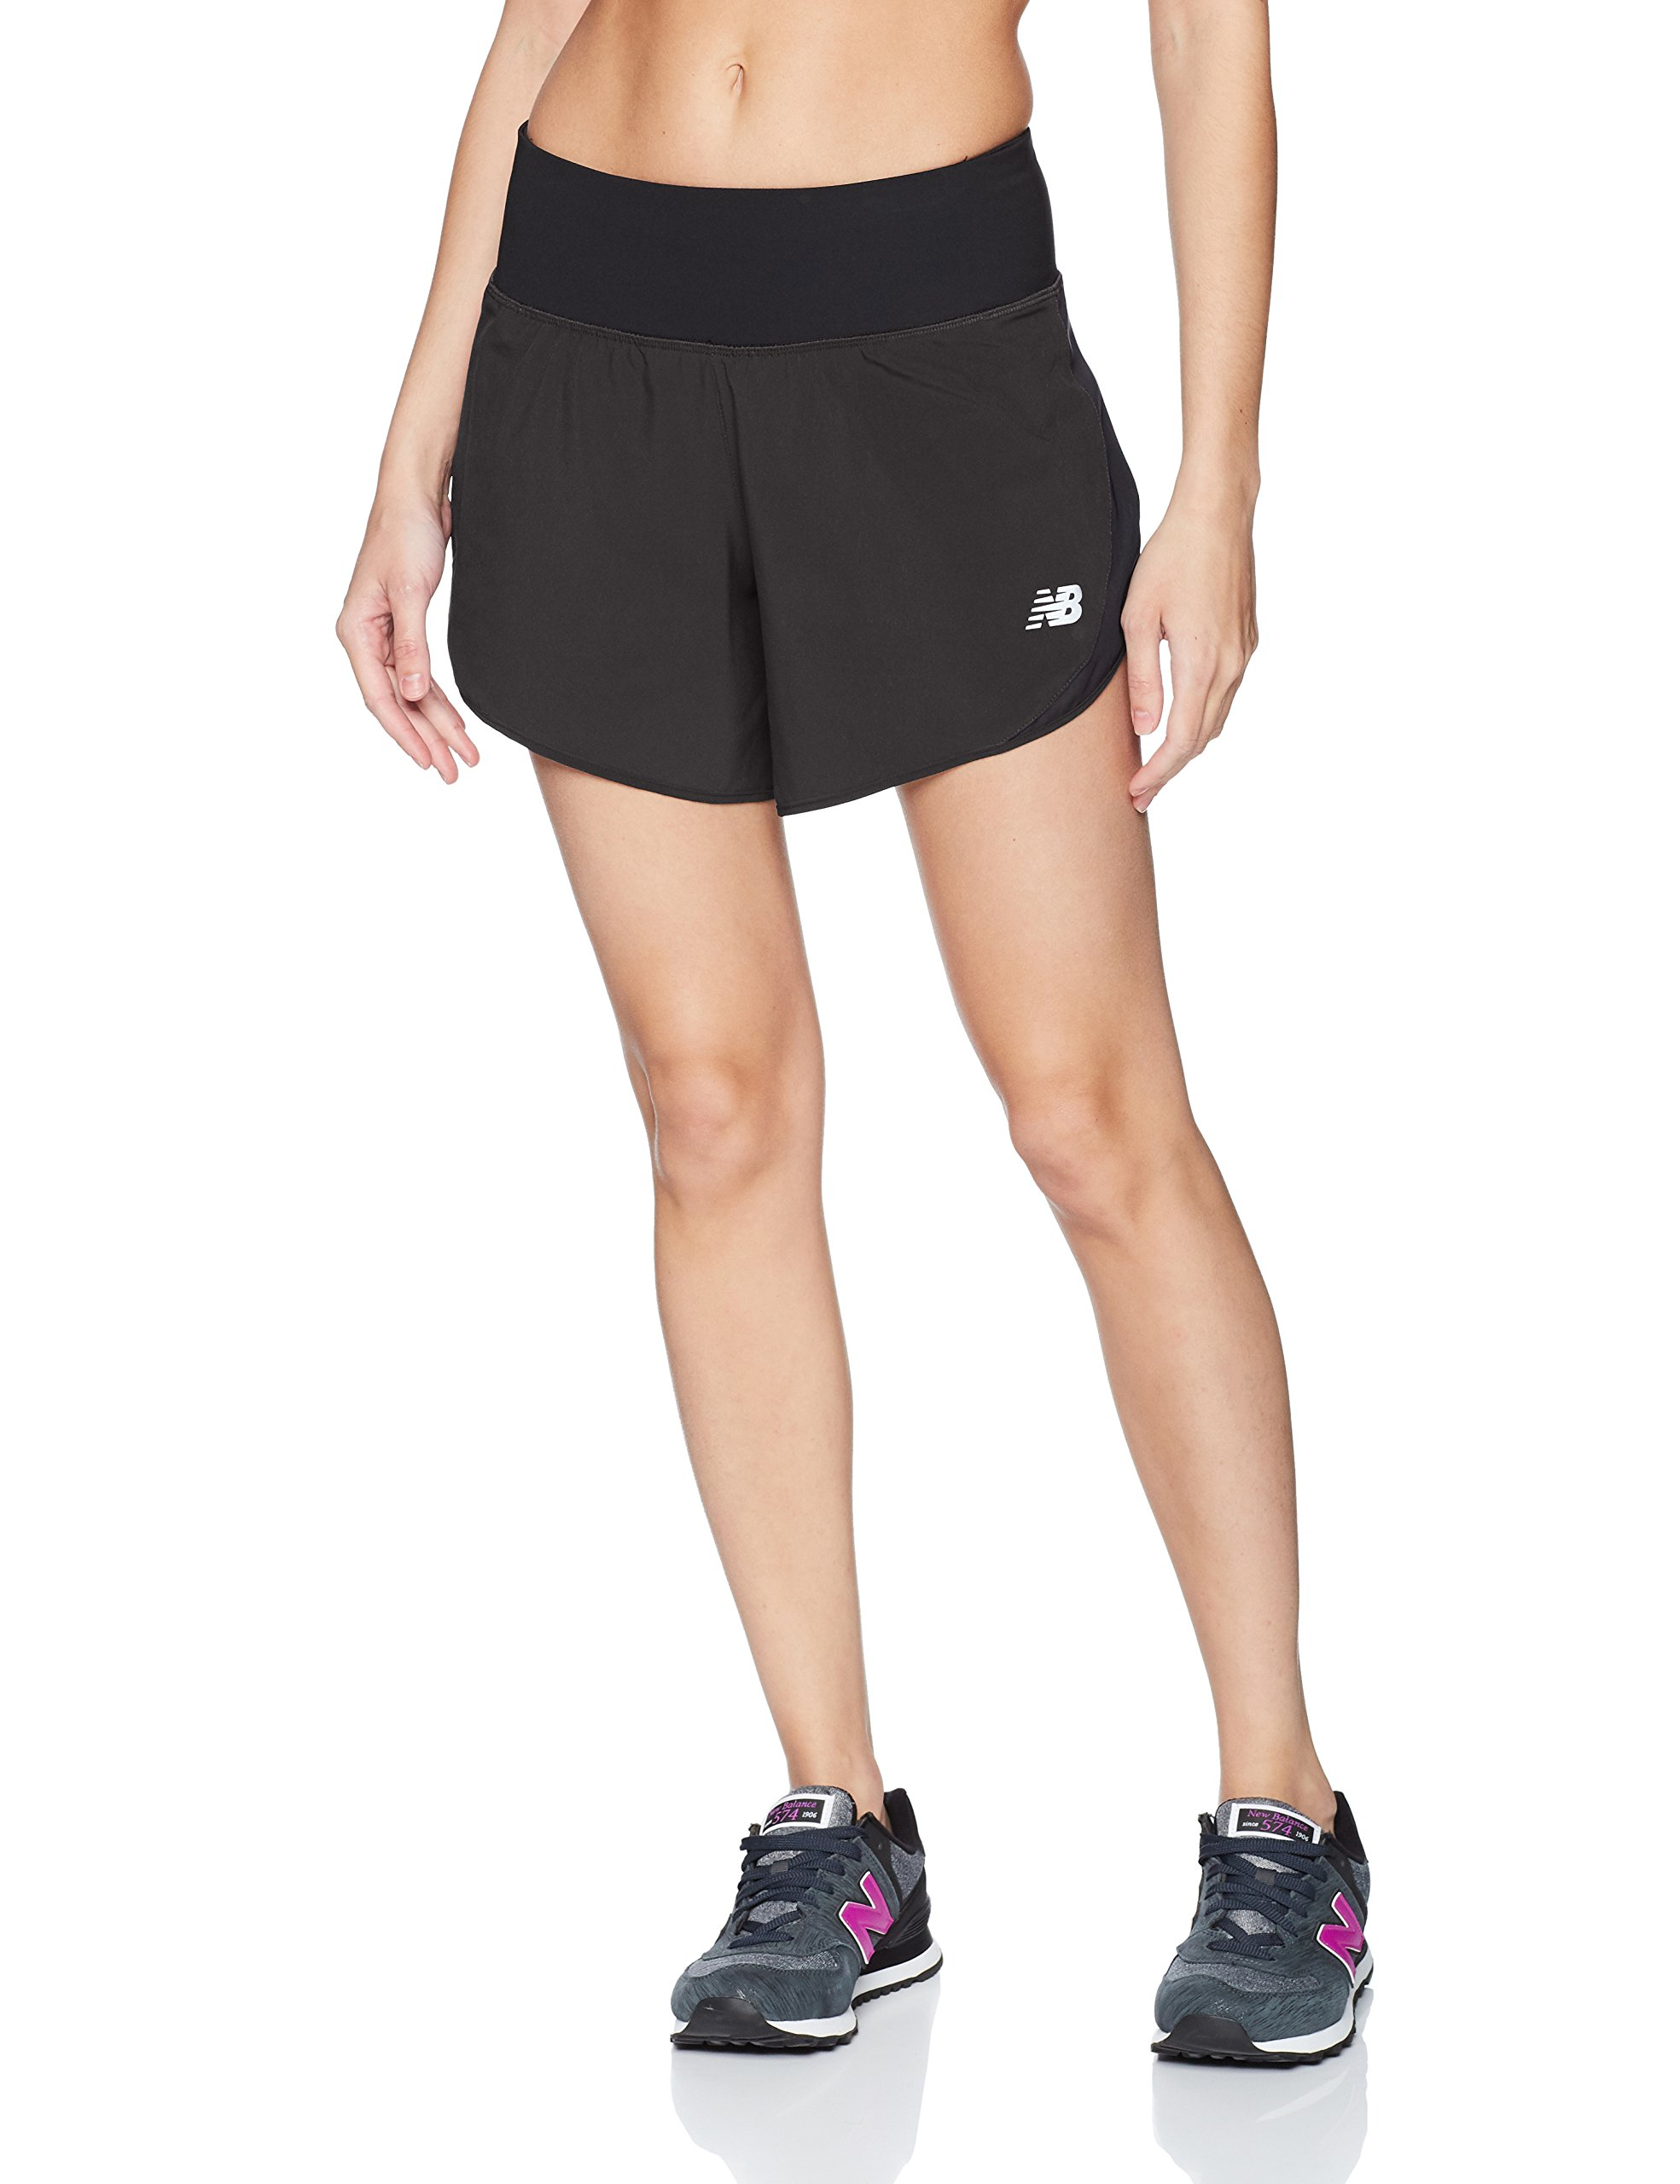 New Balance Impact Short 5 in, Black, Medium by New Balance